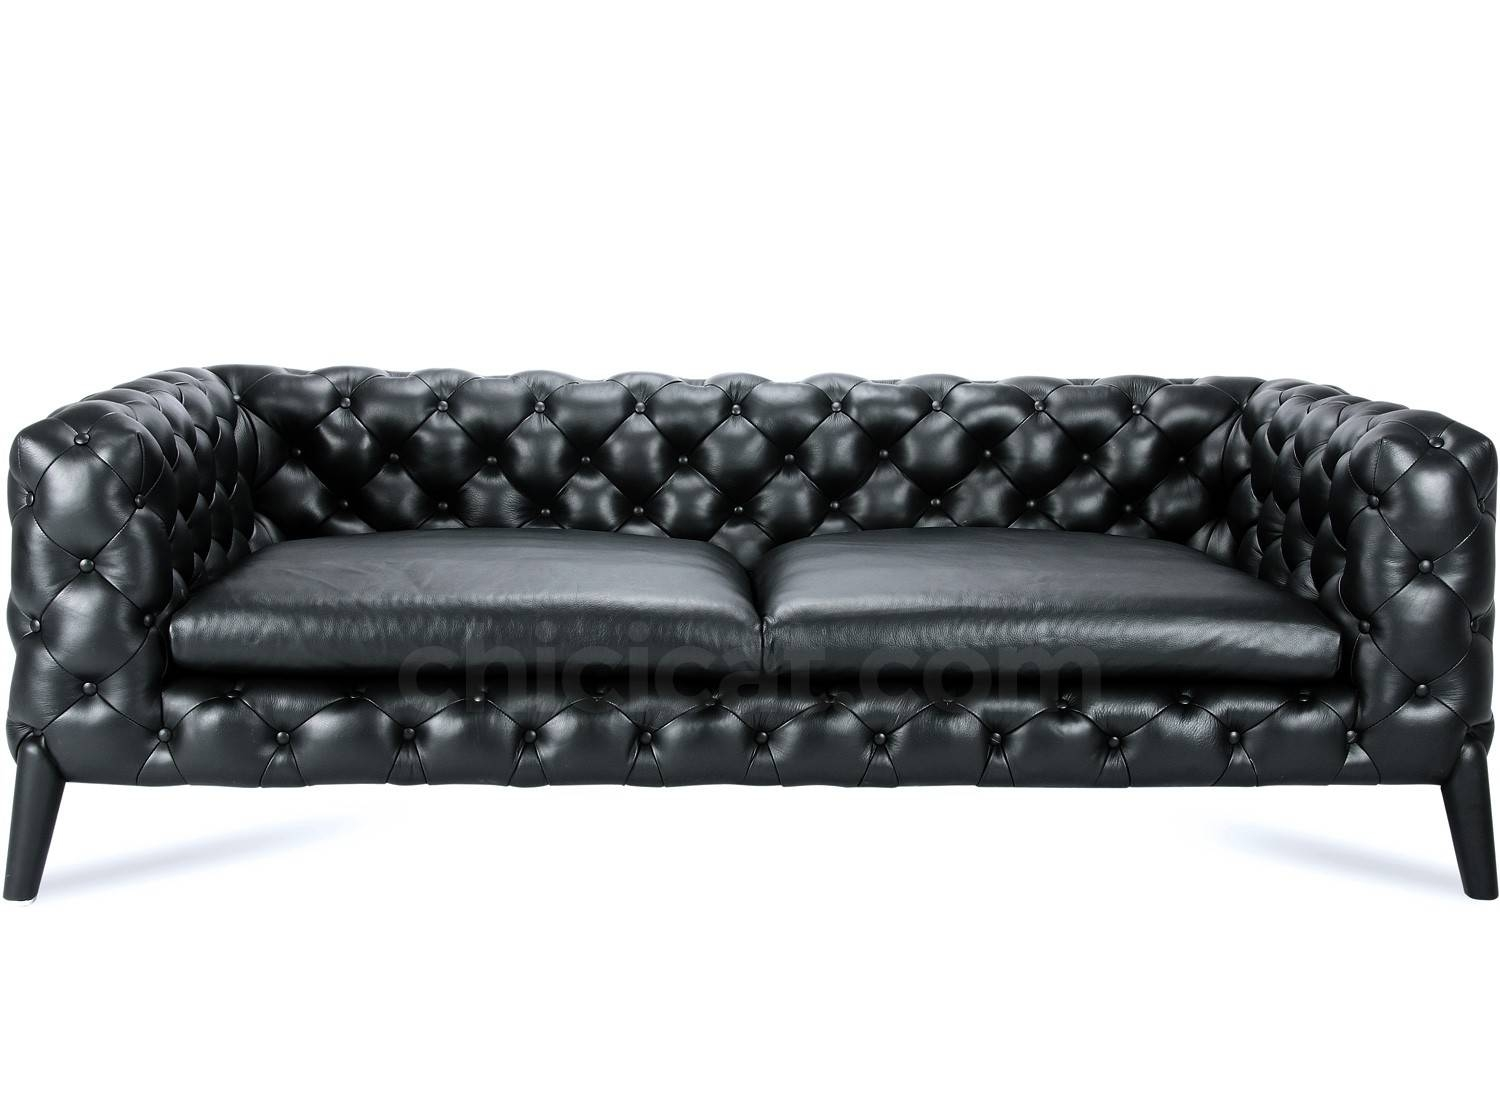 Windsor Chesterfield Sofa Replica throughout Windsor Sofas (Image 15 of 30)